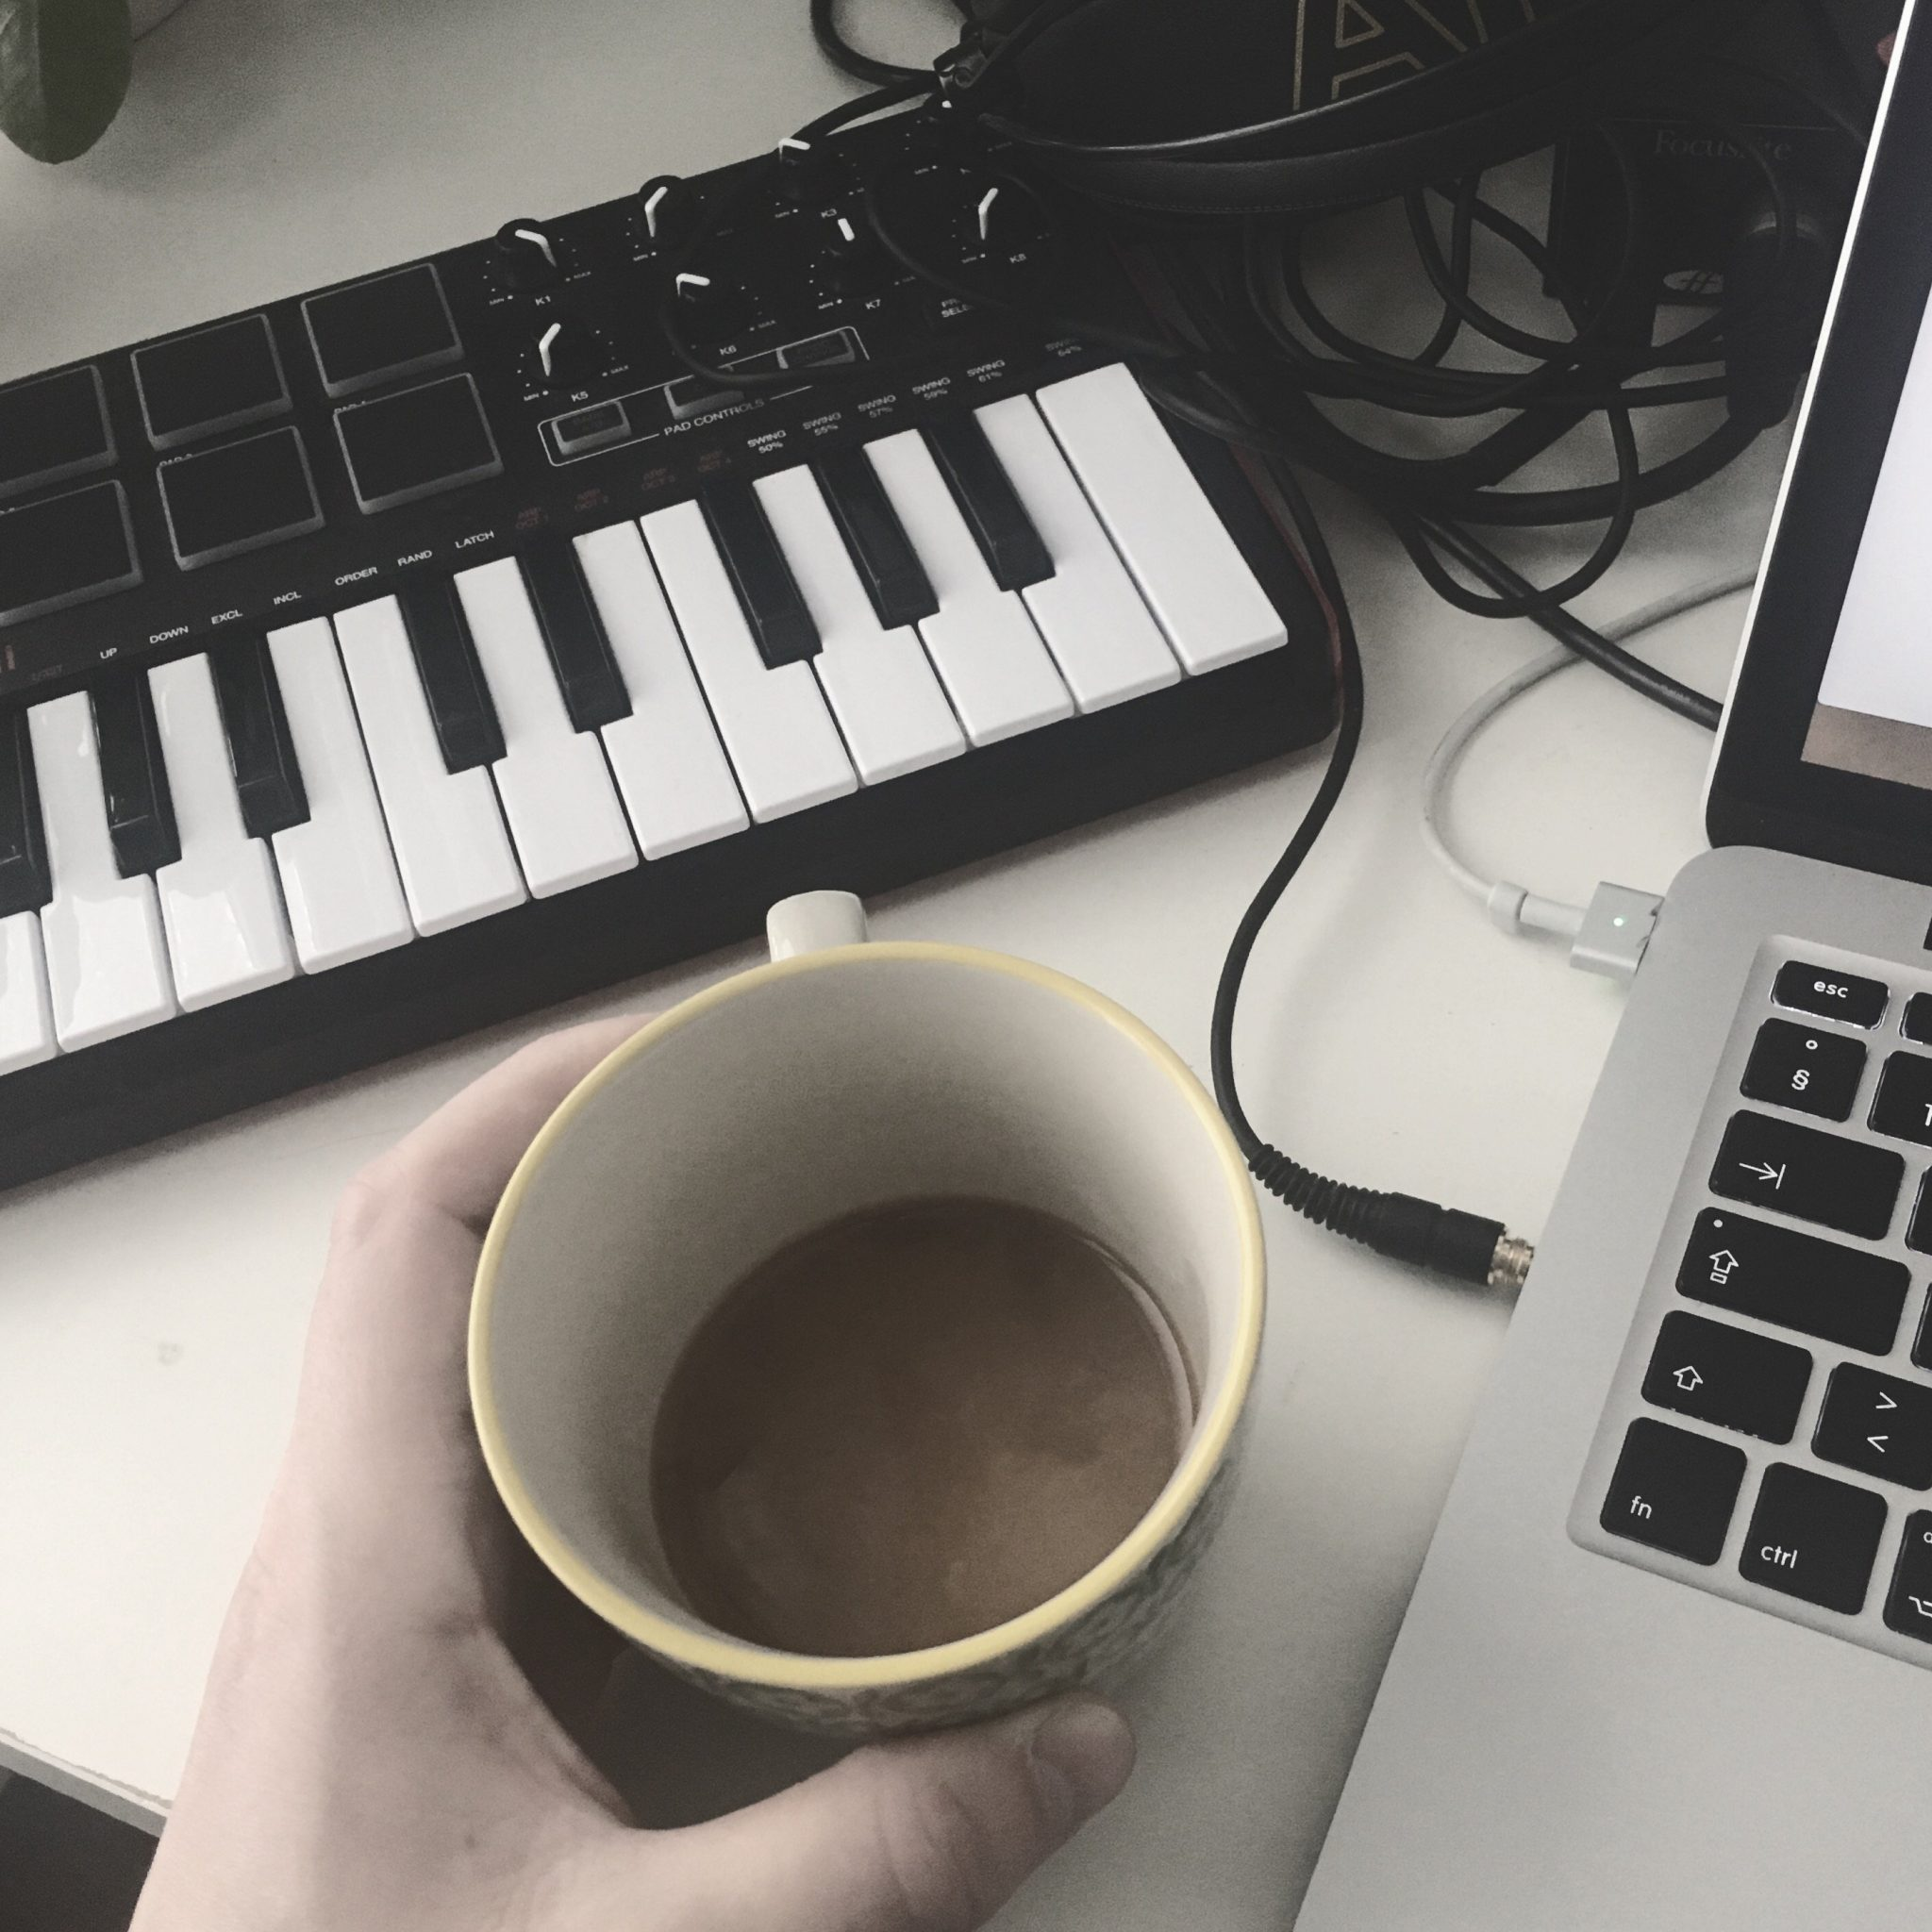 Writing one song at a time or multiple songs simultaneously - That's the big question